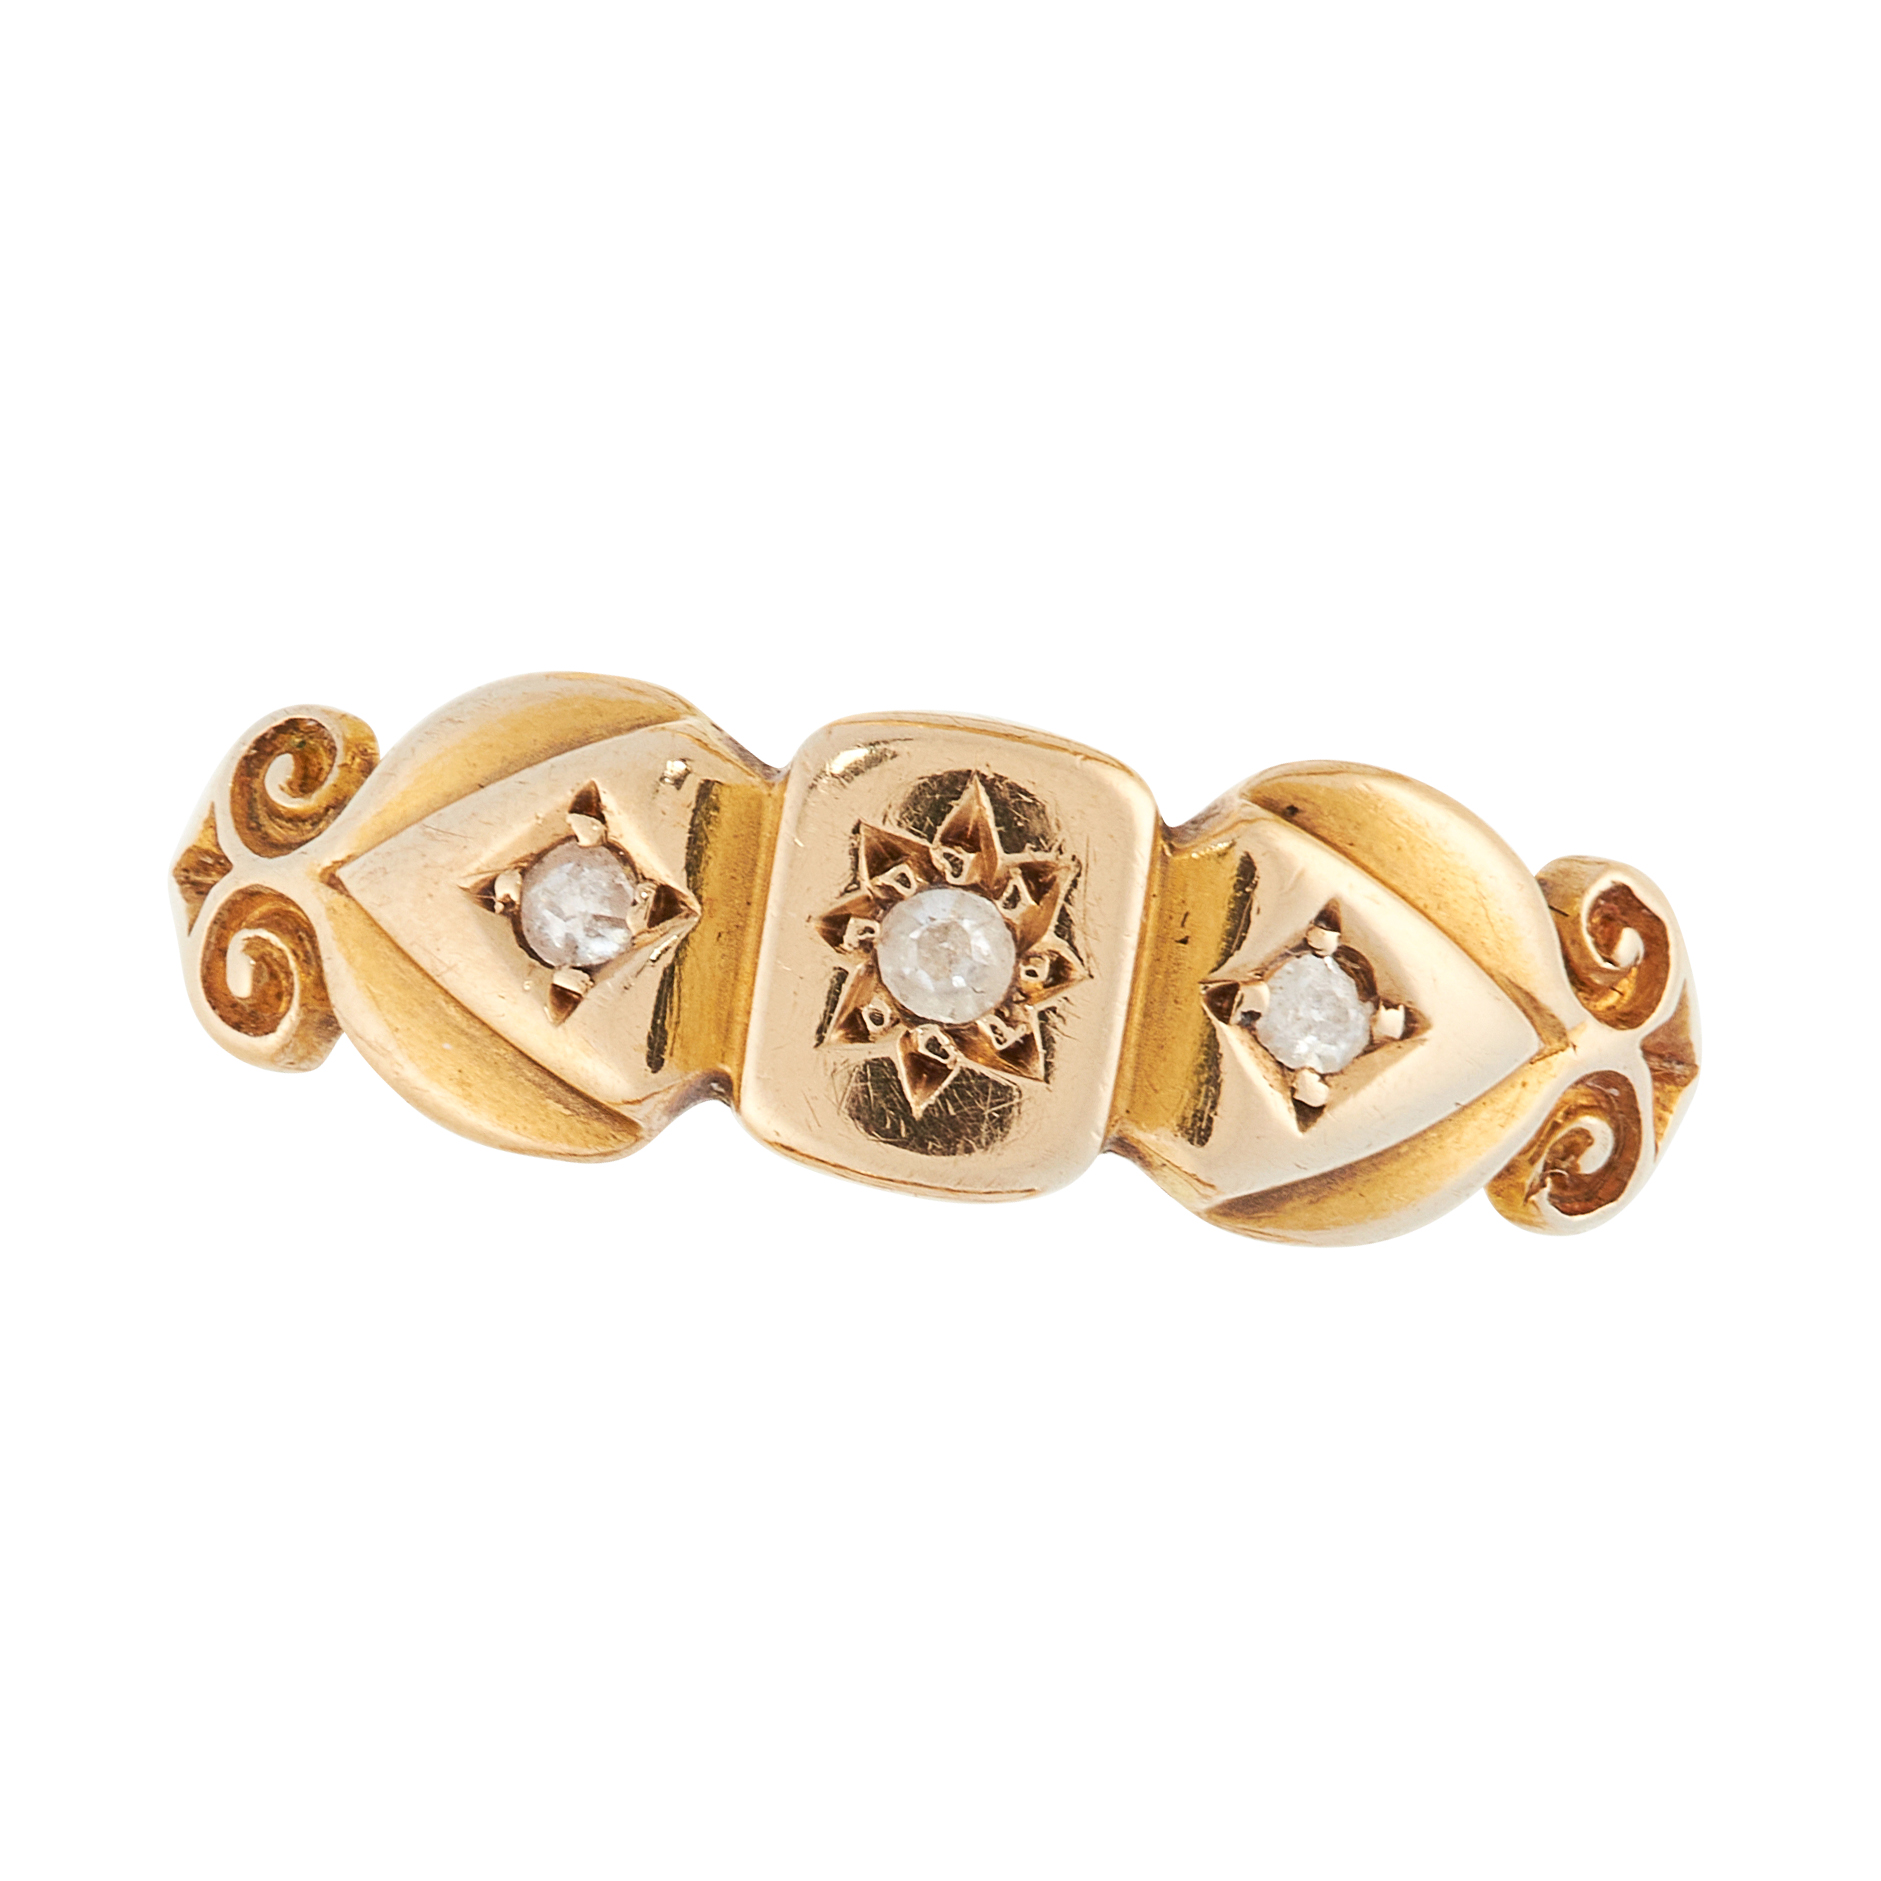 AN ANTIQUE DIAMOND DRESS RING, CIRCA 1900 in 18ct yellow gold, set with a trio of round cut diamonds